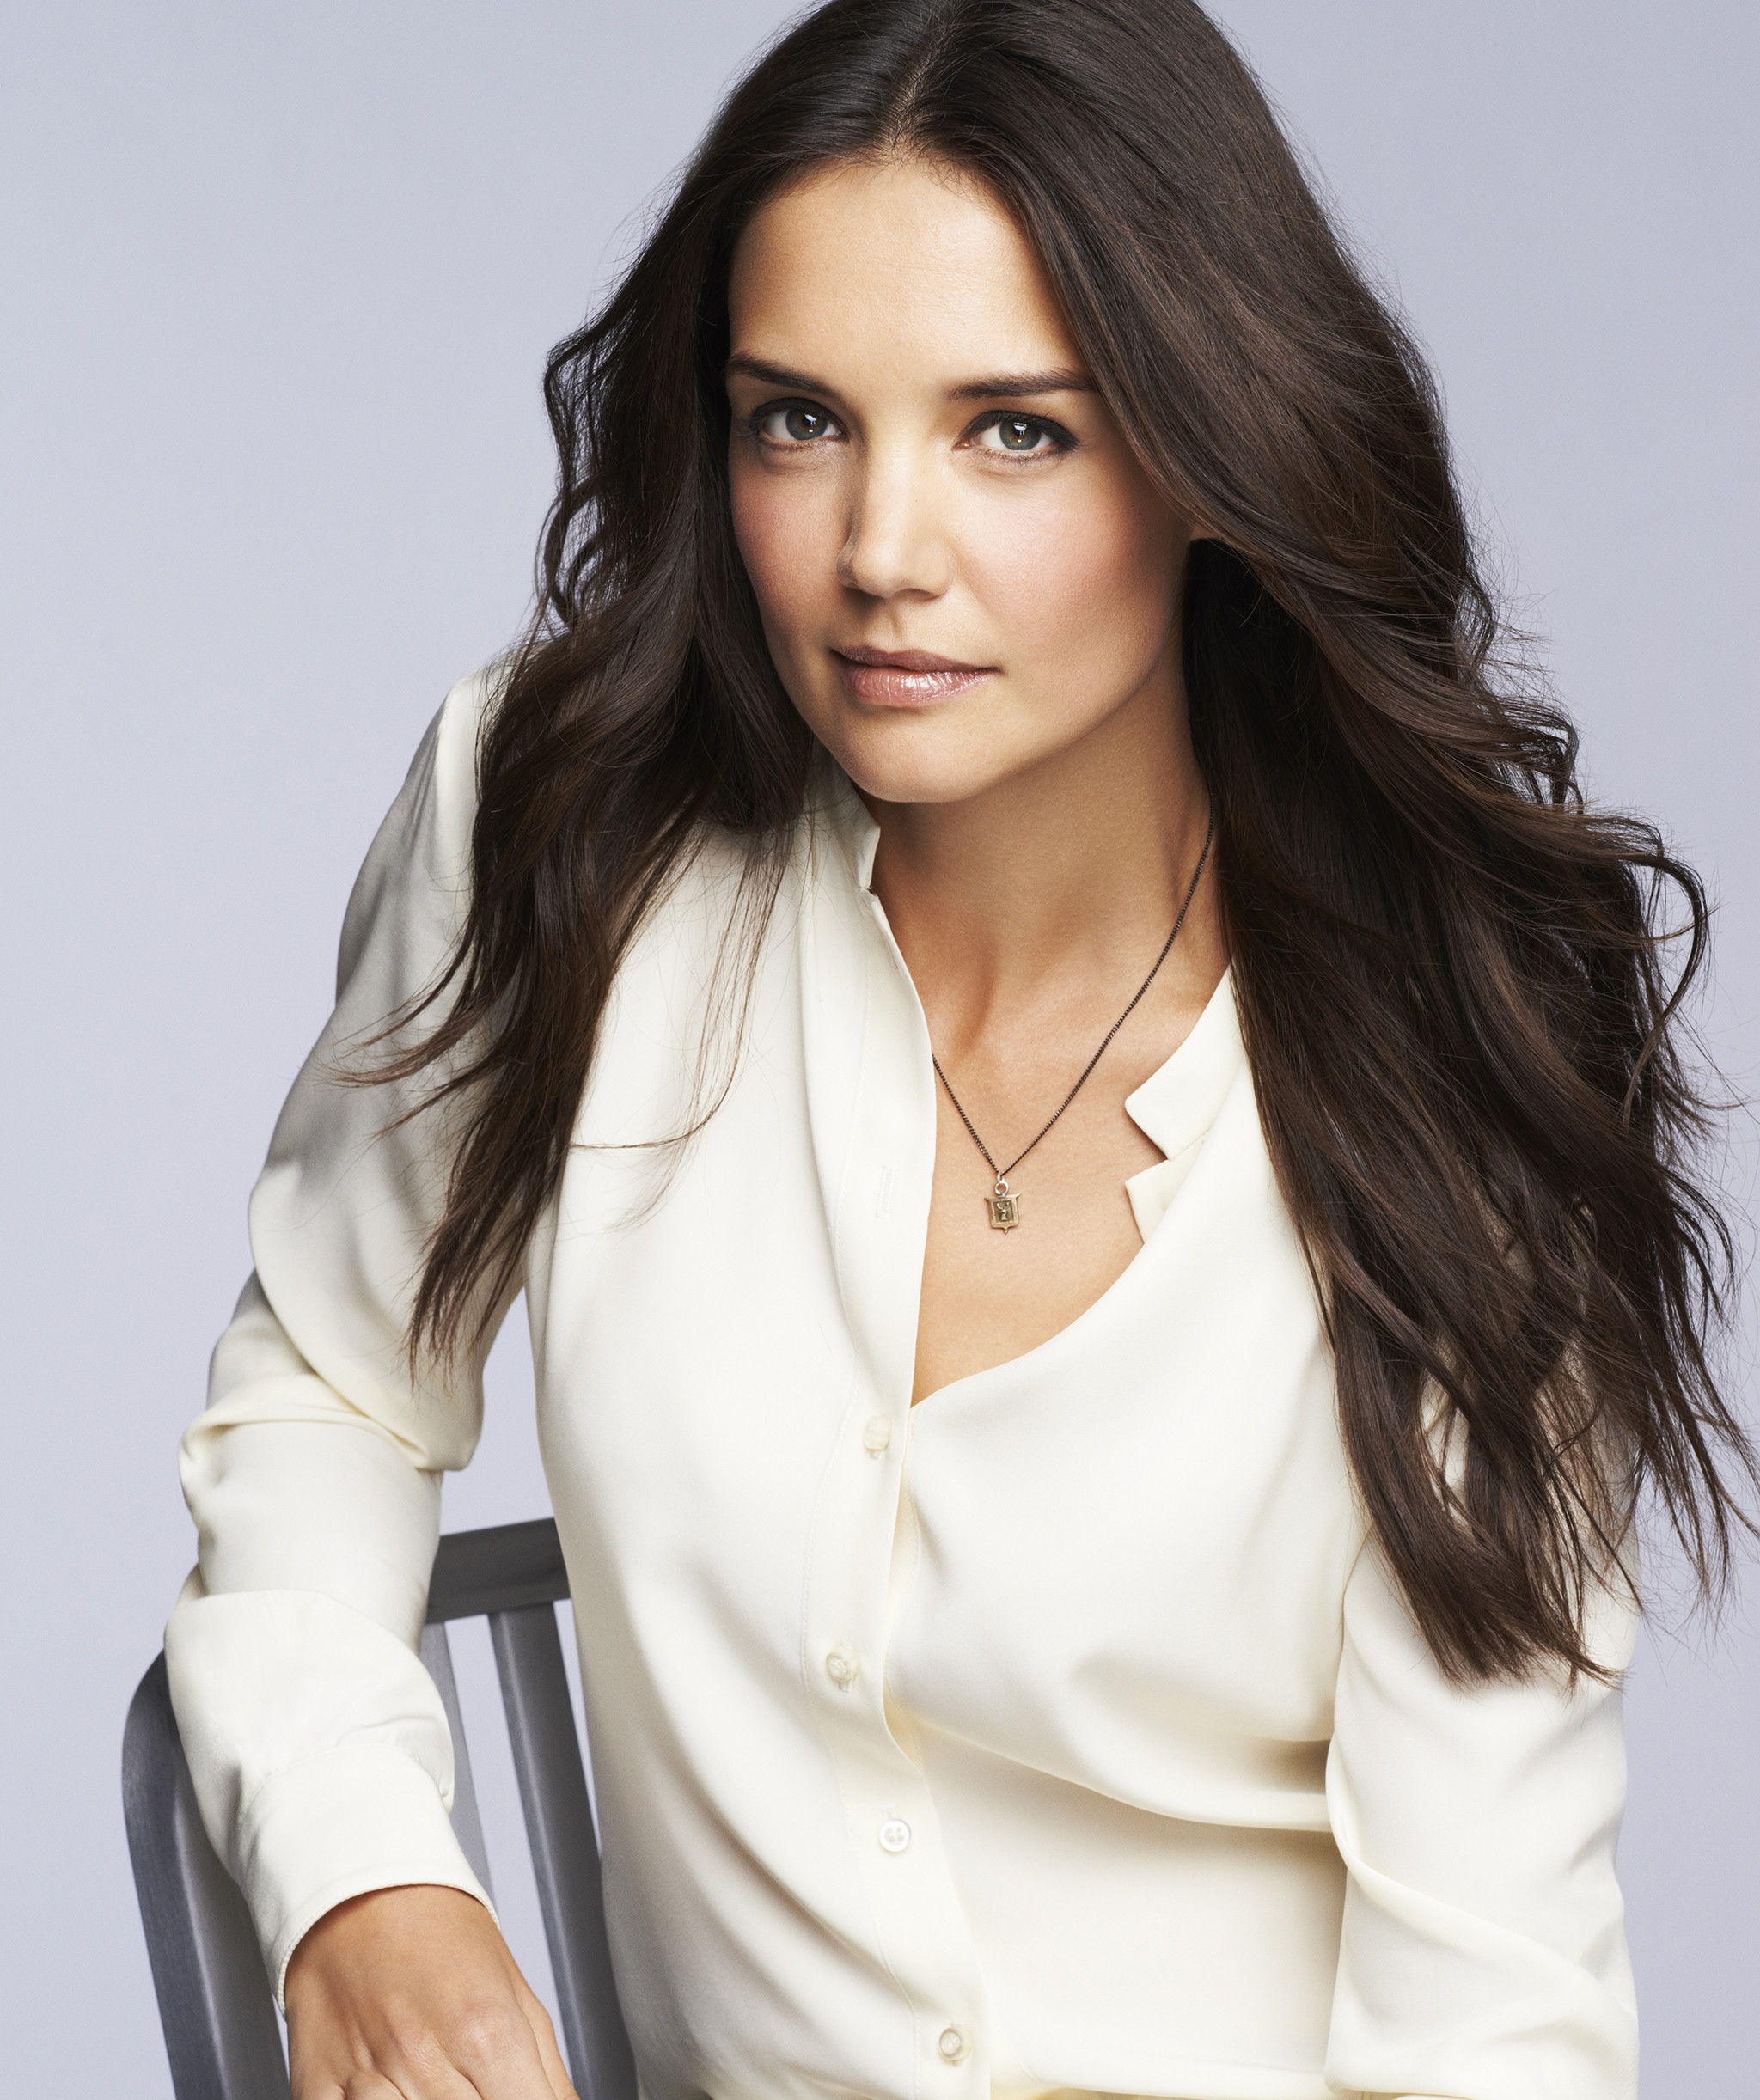 Katie Holmes Press Photo Approved.JPG